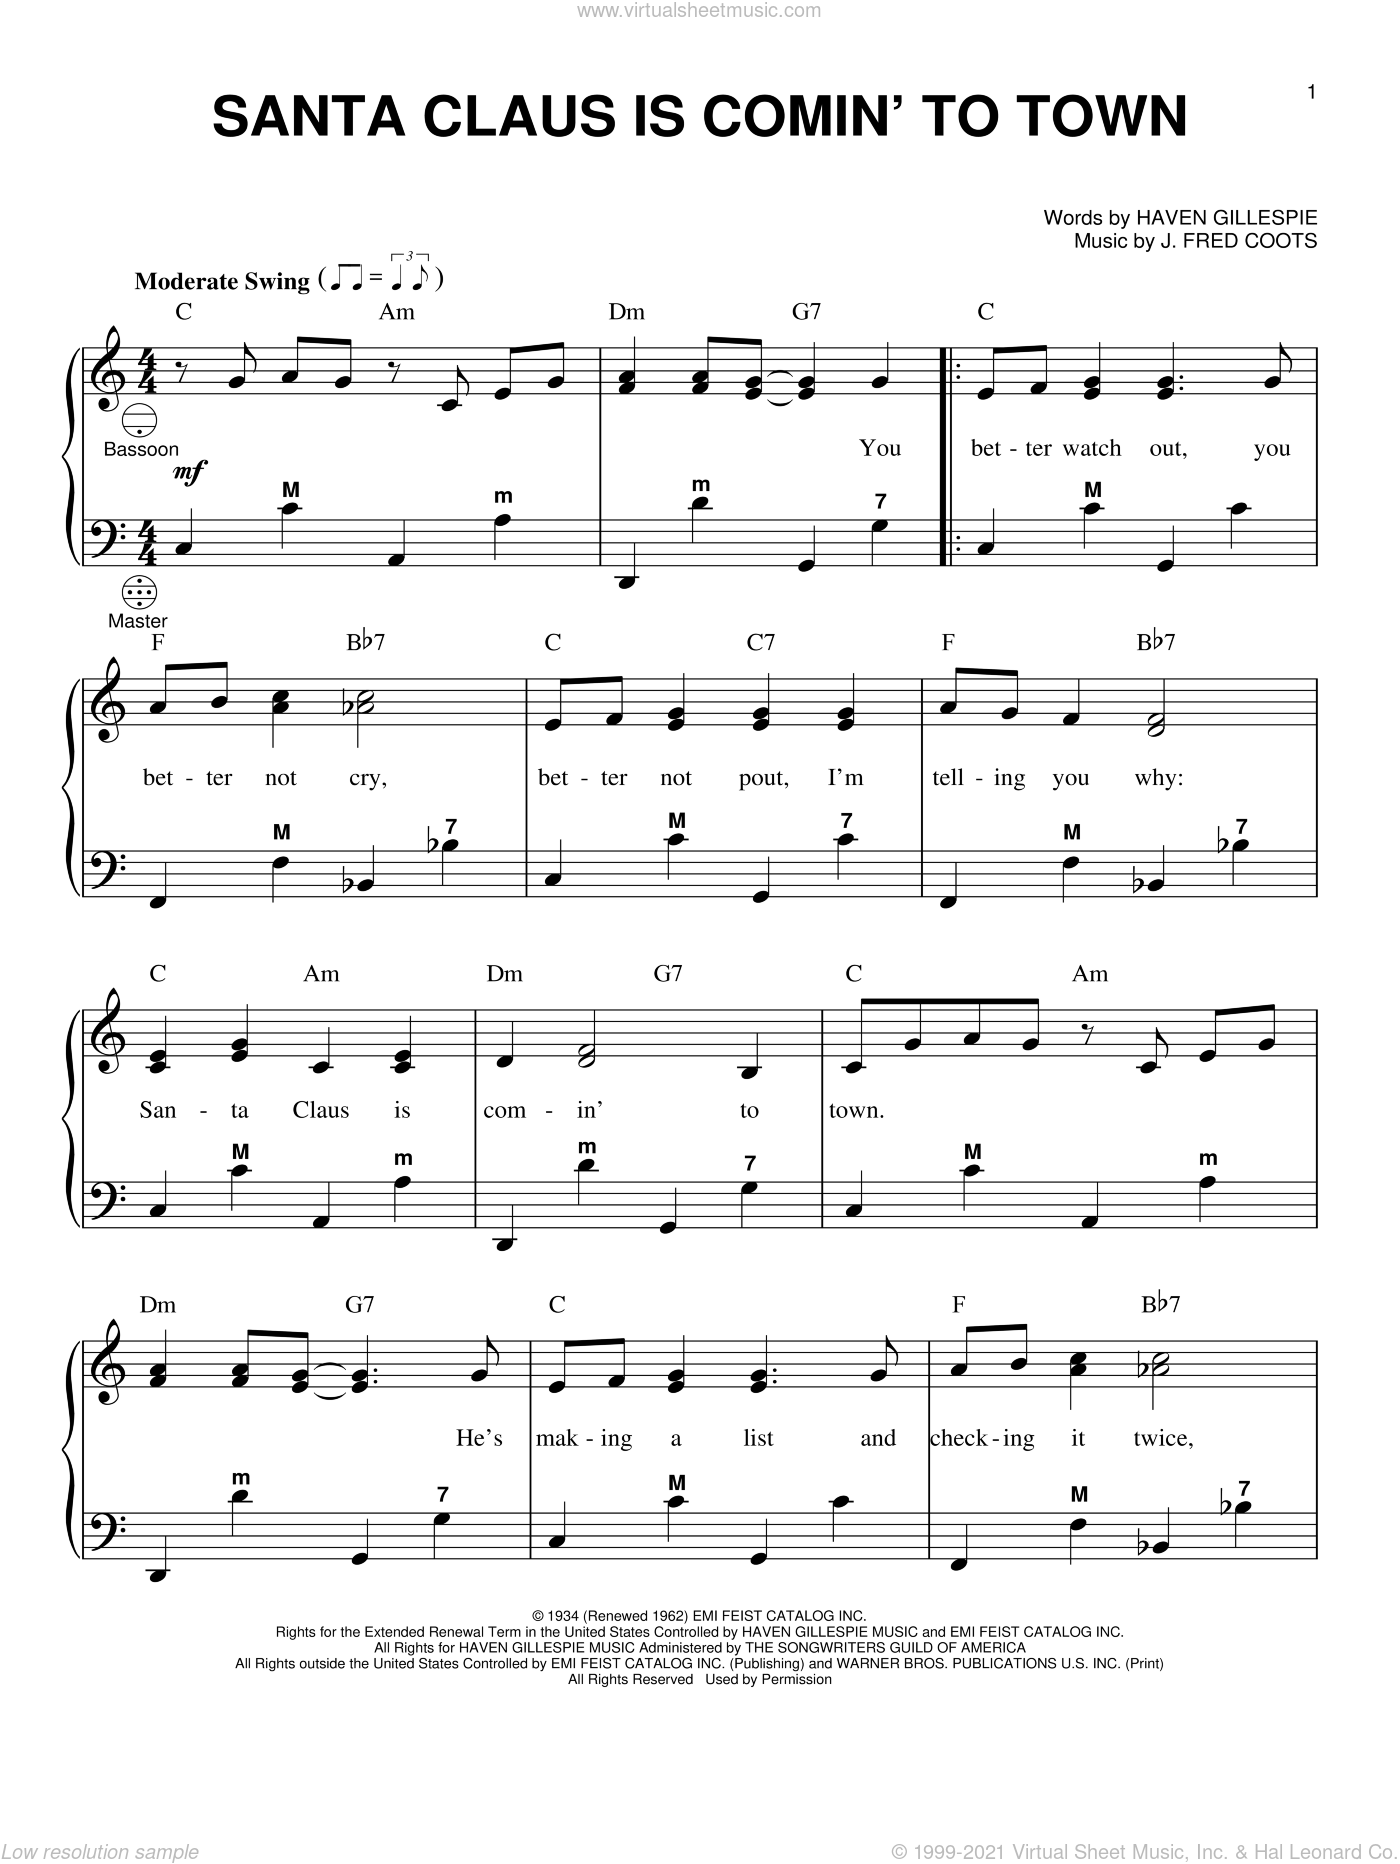 Santa Claus Is Comin' To Town sheet music for accordion by J. Fred Coots, Gary Meisner and Haven Gillespie, intermediate skill level